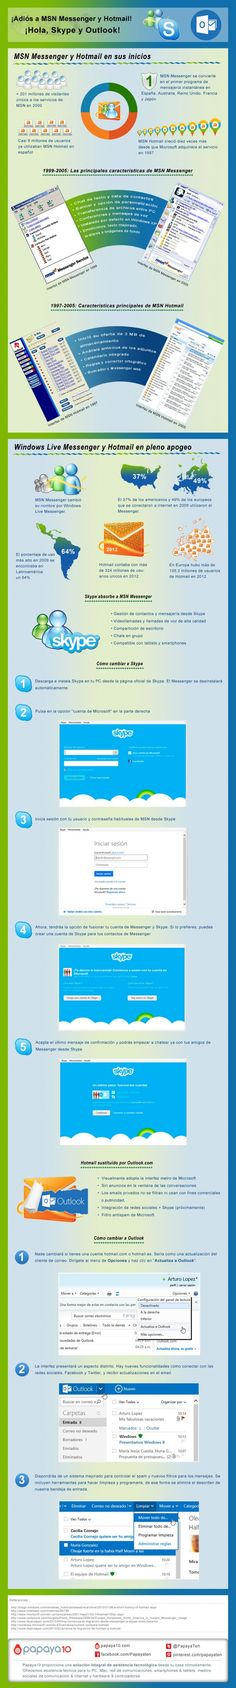 De MSN Messenger y Hotmail a Skype y Outlook – infografía en español